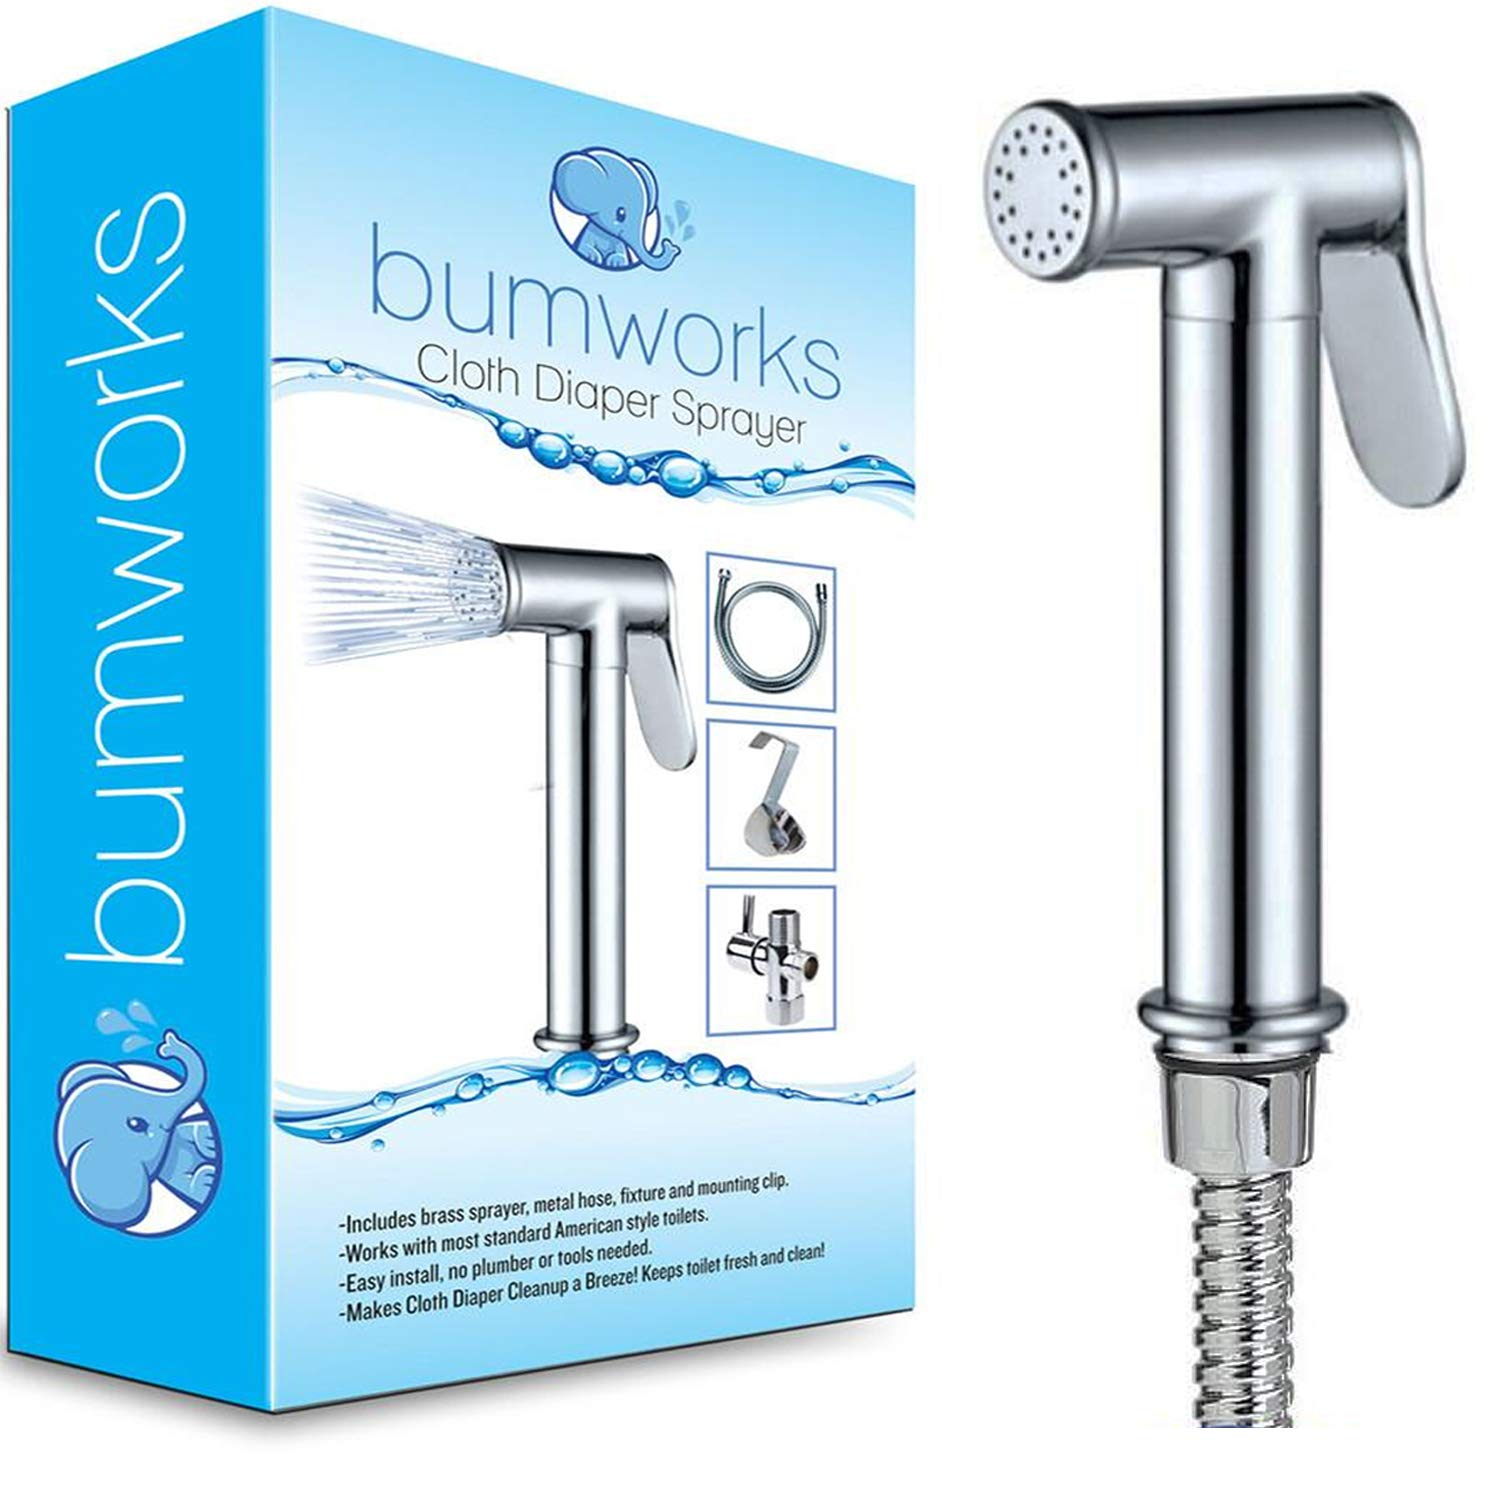 Bumworks Premium Hand held Bidet Sprayer for Toilet - Brass Chrome Nozzle w/Metal Hose, T-Valve, and Mounting Attachment. Cloth Diaper Sprayer Washer Bidet for Baby and Personal Hygiene